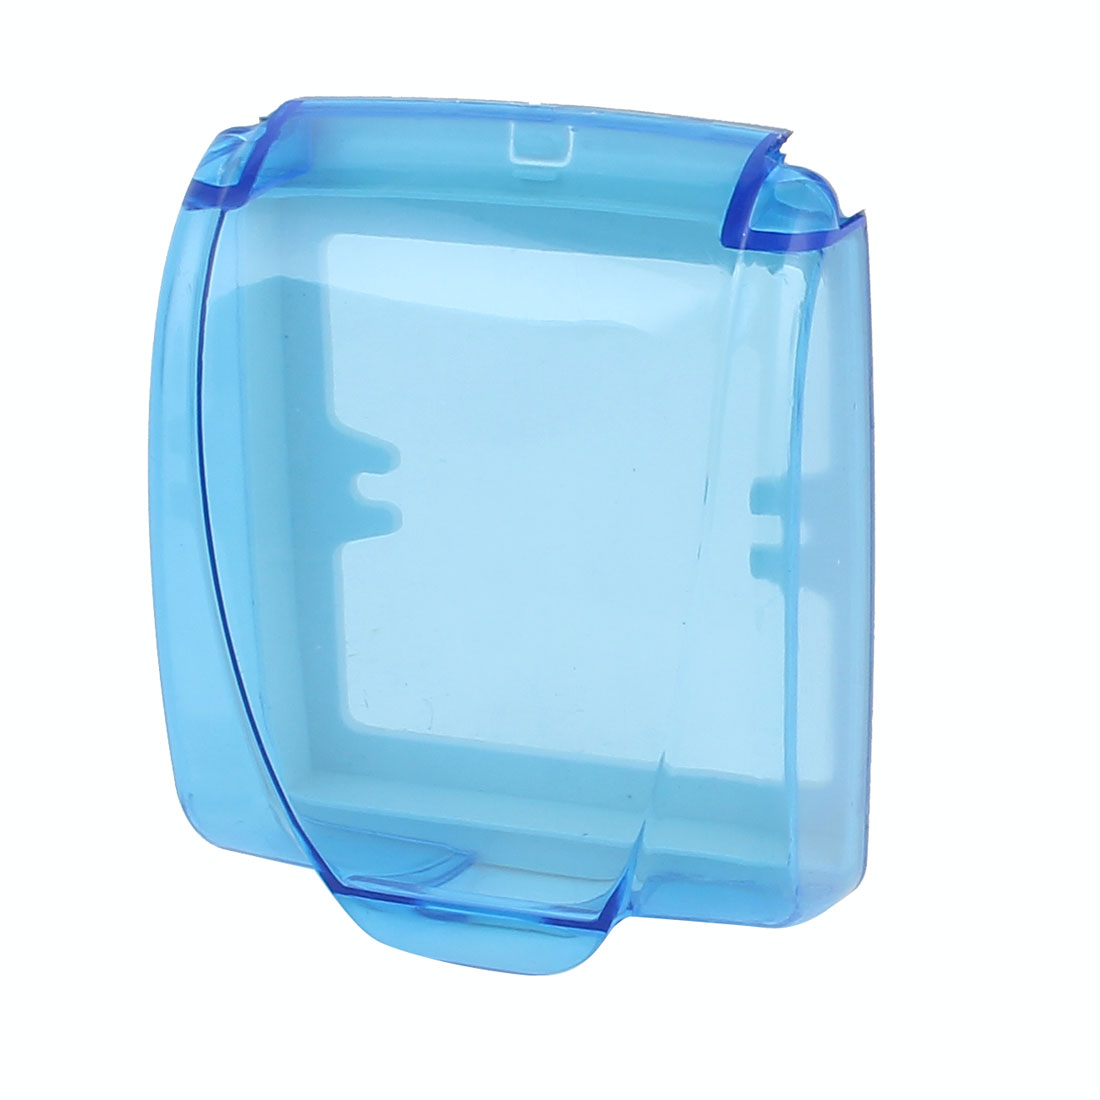 Plastic Splash Proof Electrical Enclosure Wall Plate Socket External Box Clear Blue